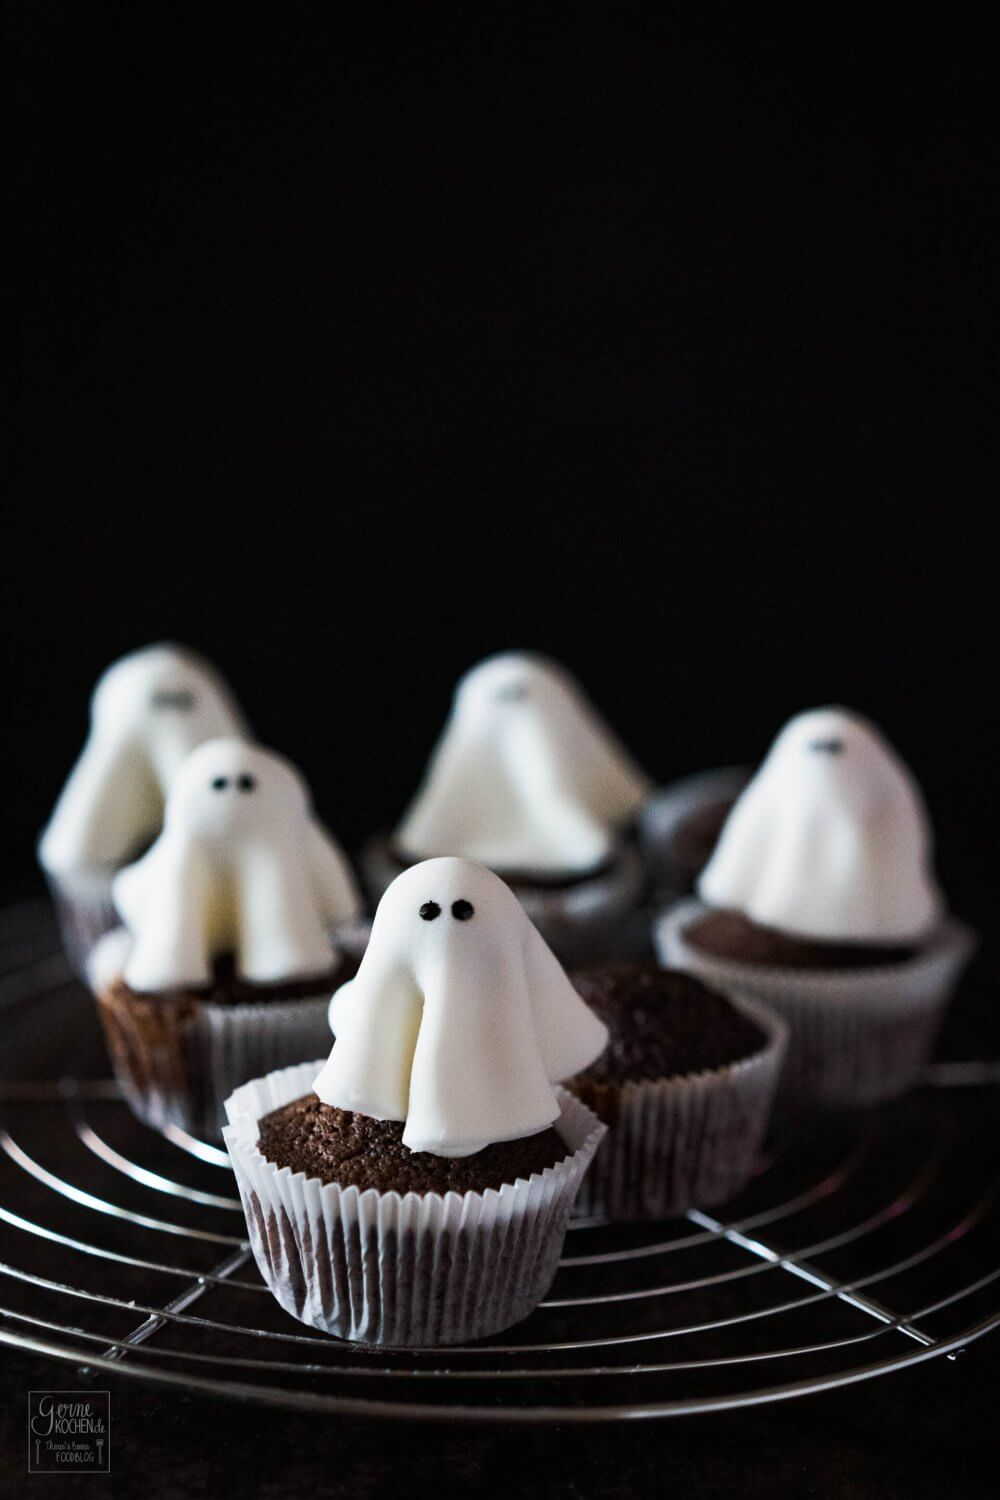 Gespenster-Muffins – spooky